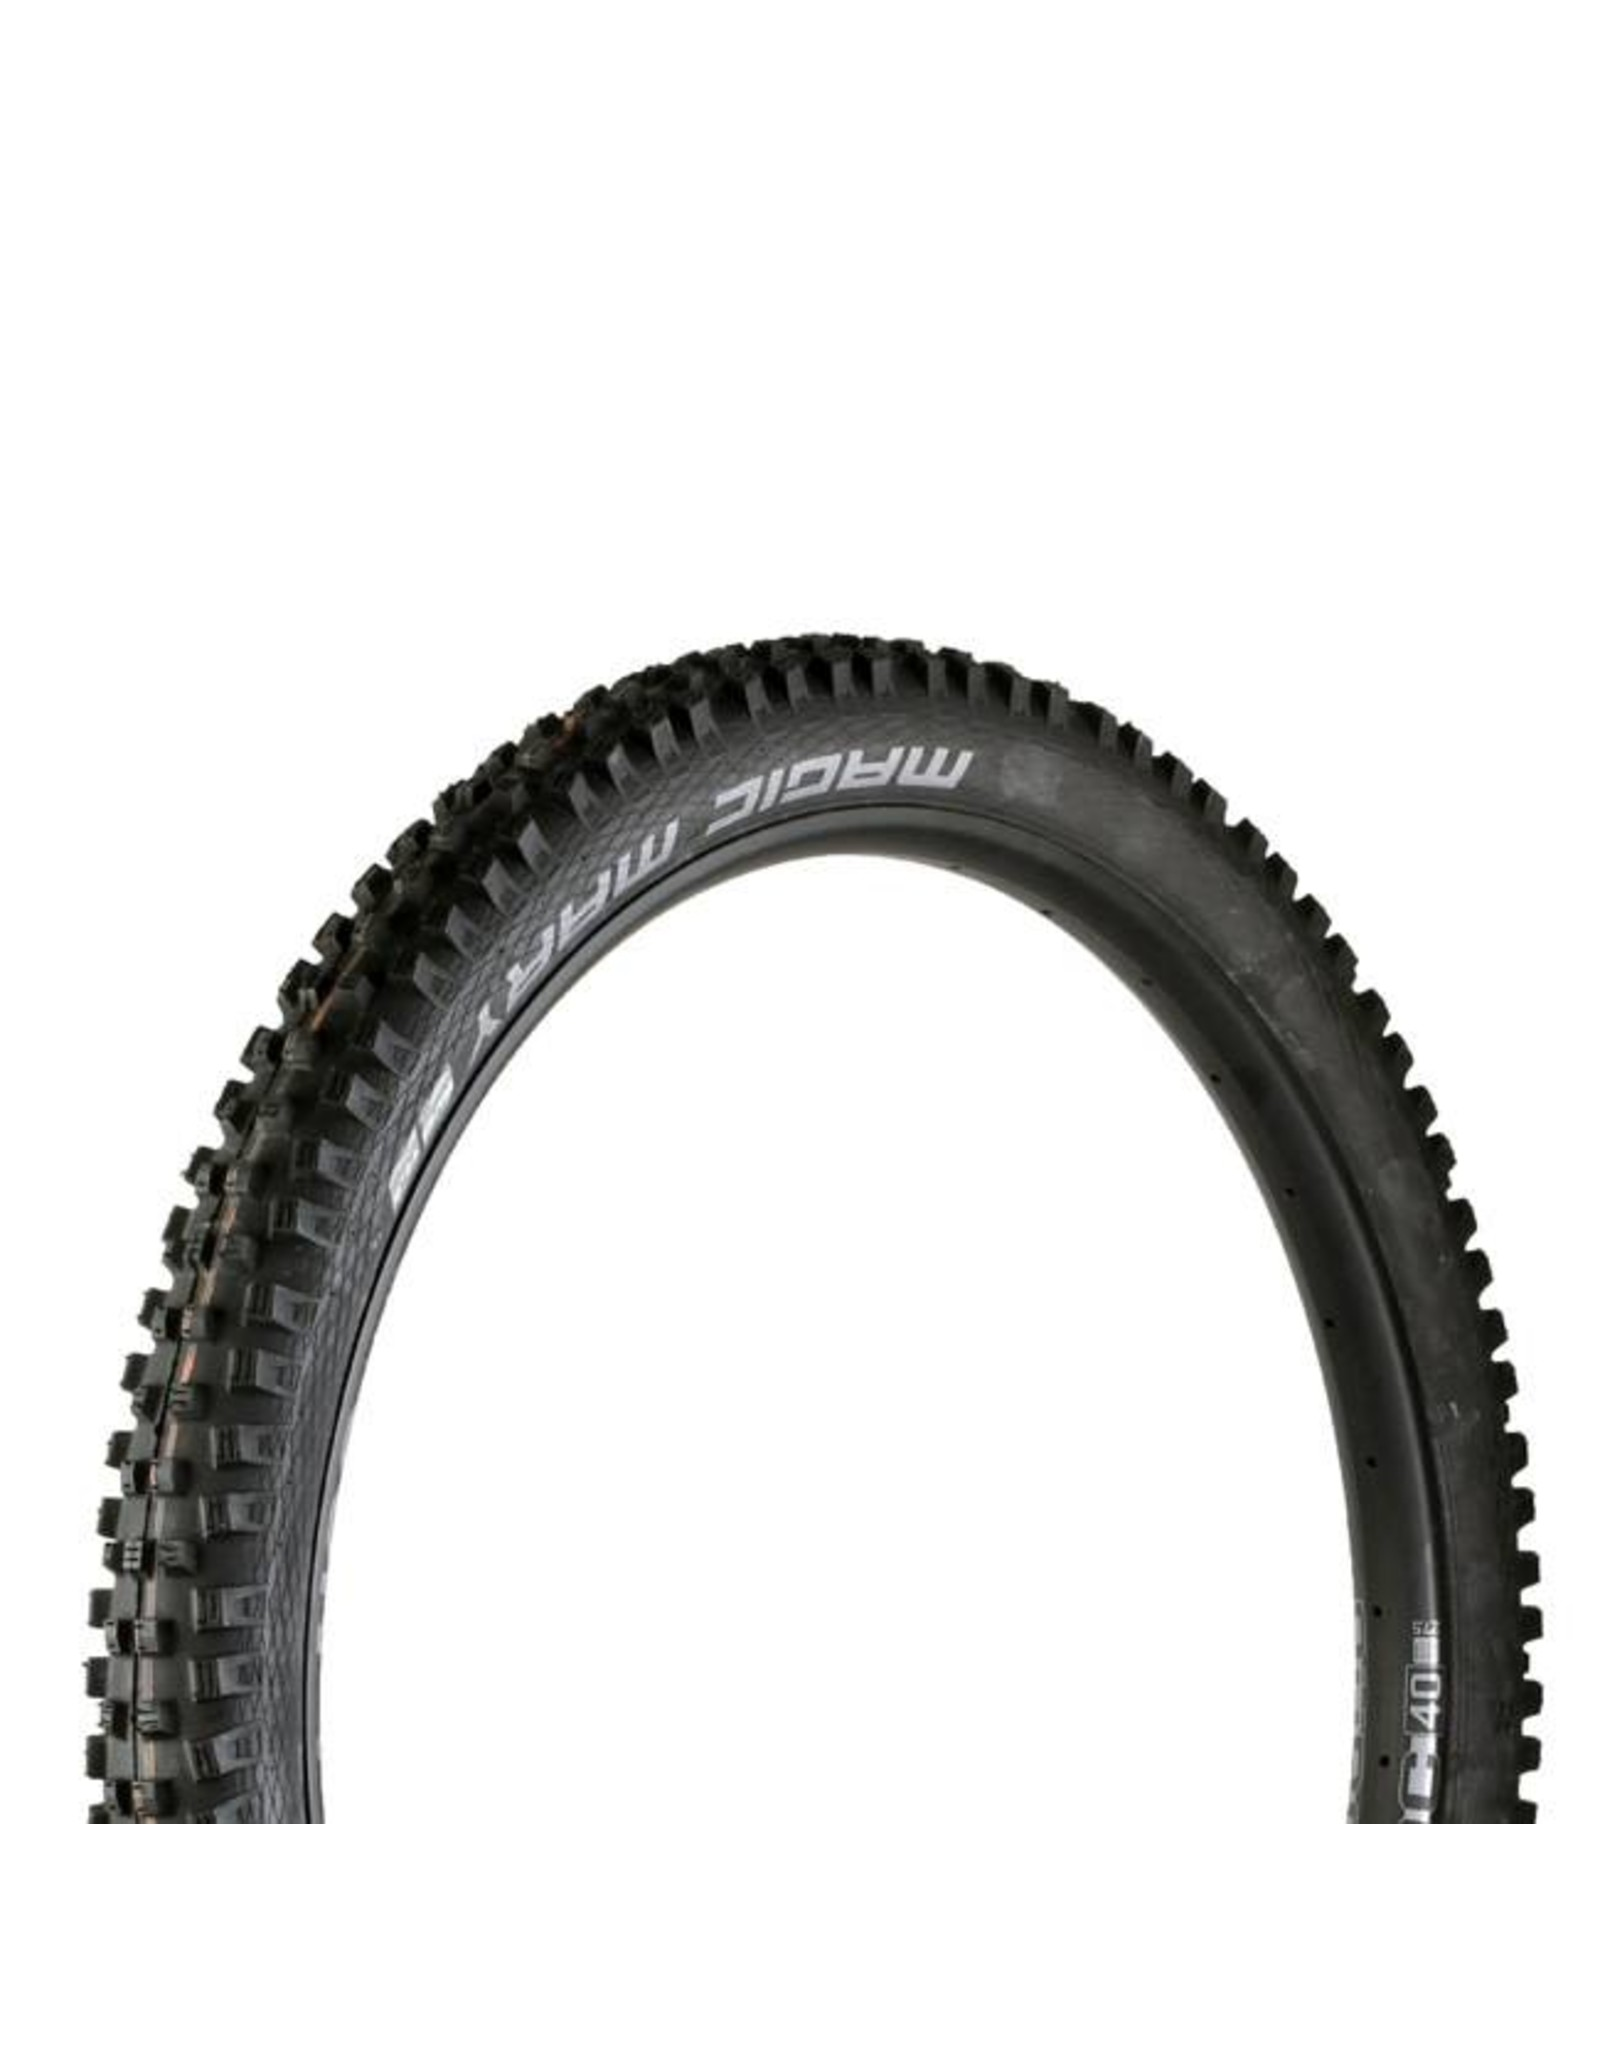 "Schwalbe Schwalbe Magic Mary Tire: 27.5 x 2.35"", Folding Bead, Evolution Line, Addix Soft Compound, SnakeSkin, Tubeless Easy, Black"